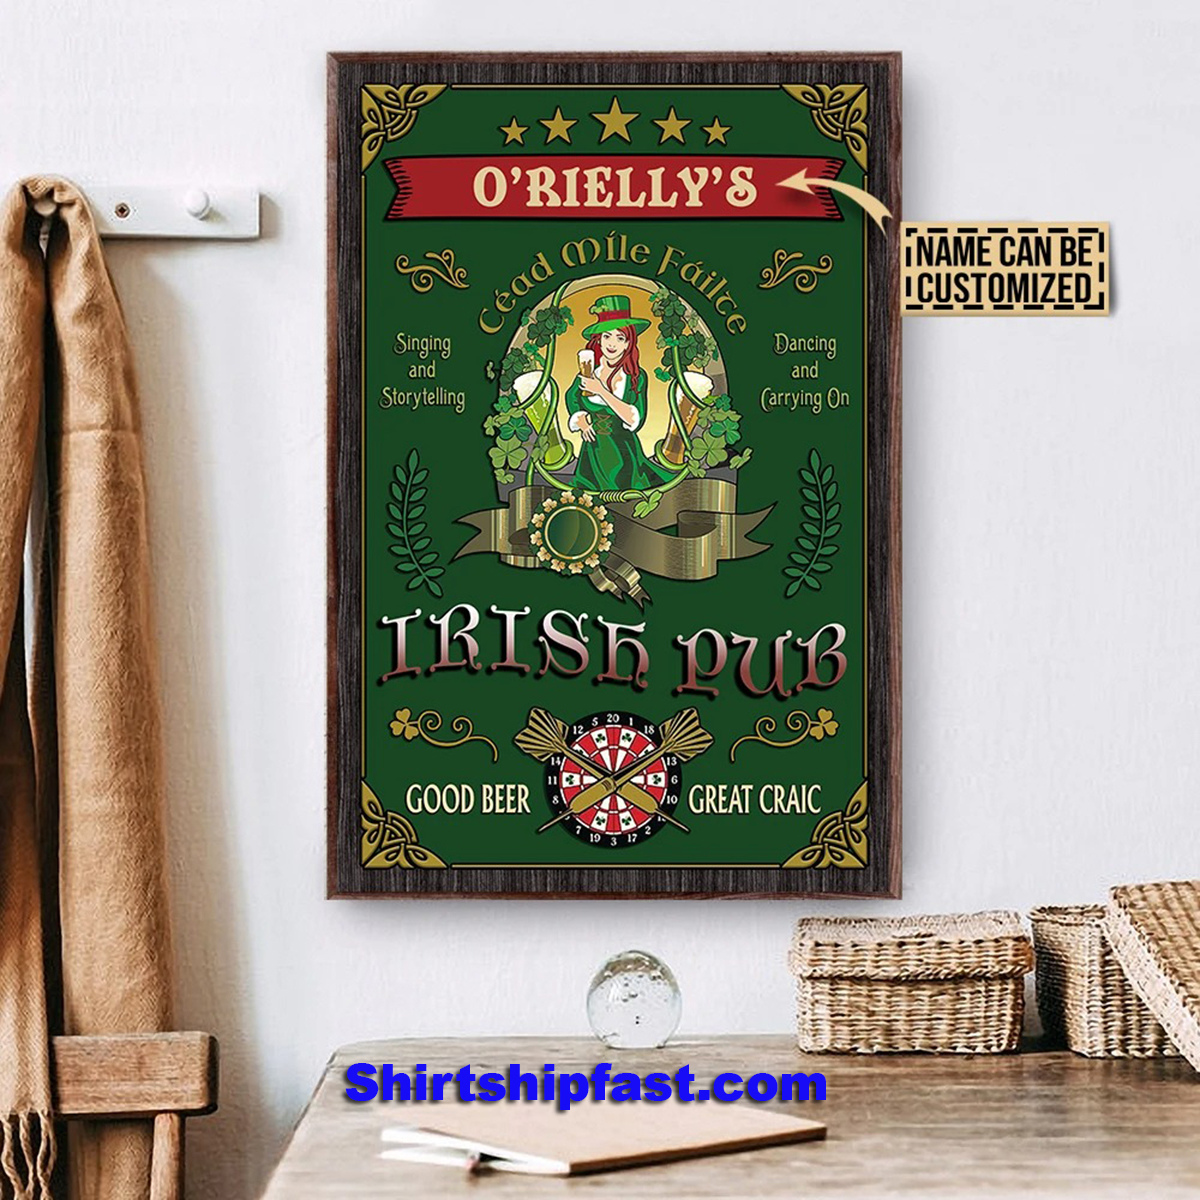 Personalized beer girl irish pub good beer great craic poster - Picture 3